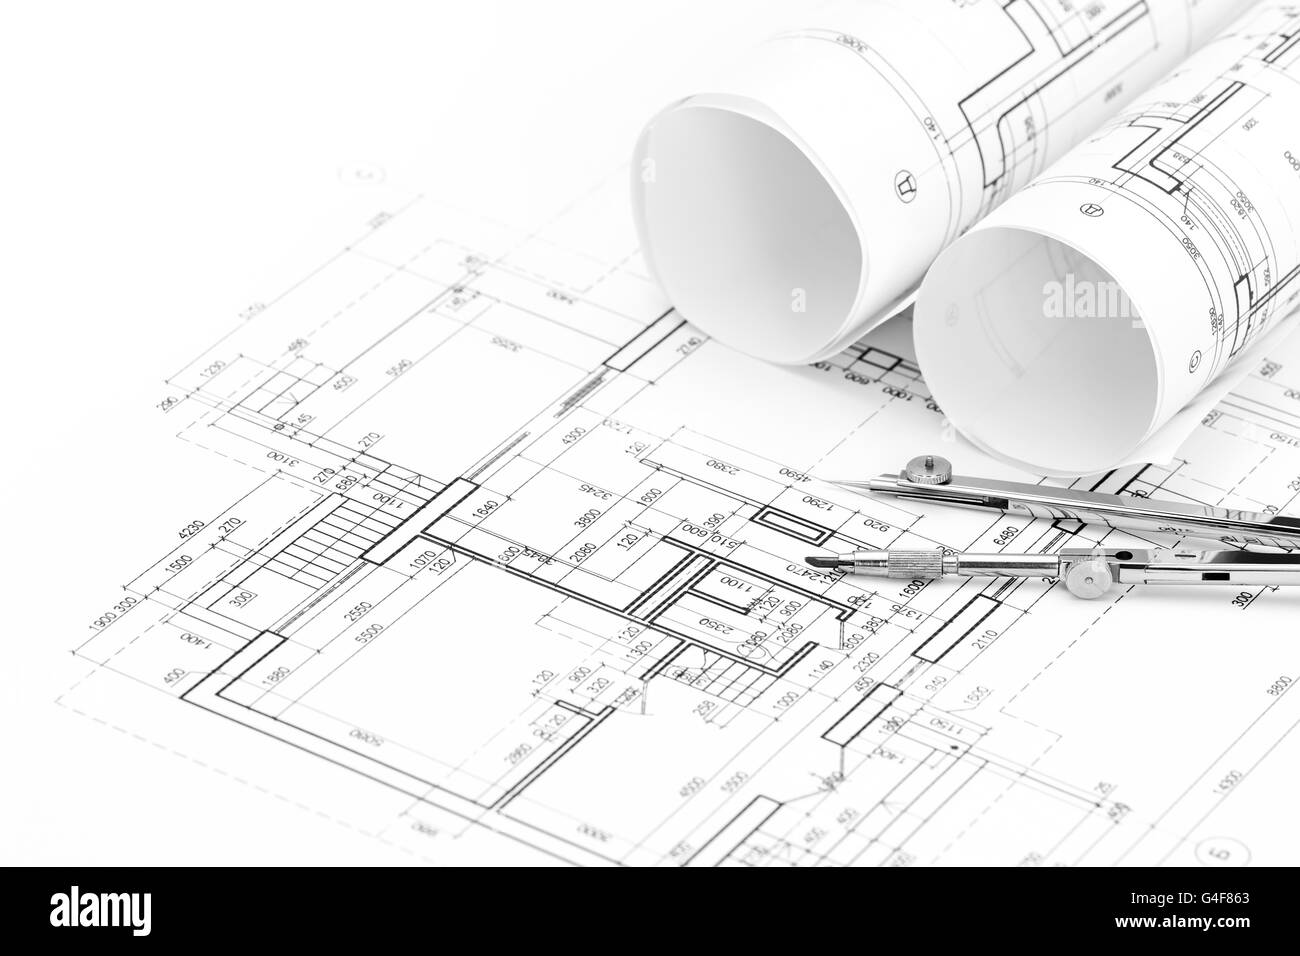 Architectural Drawings With Floor Plan And Drawing Compass